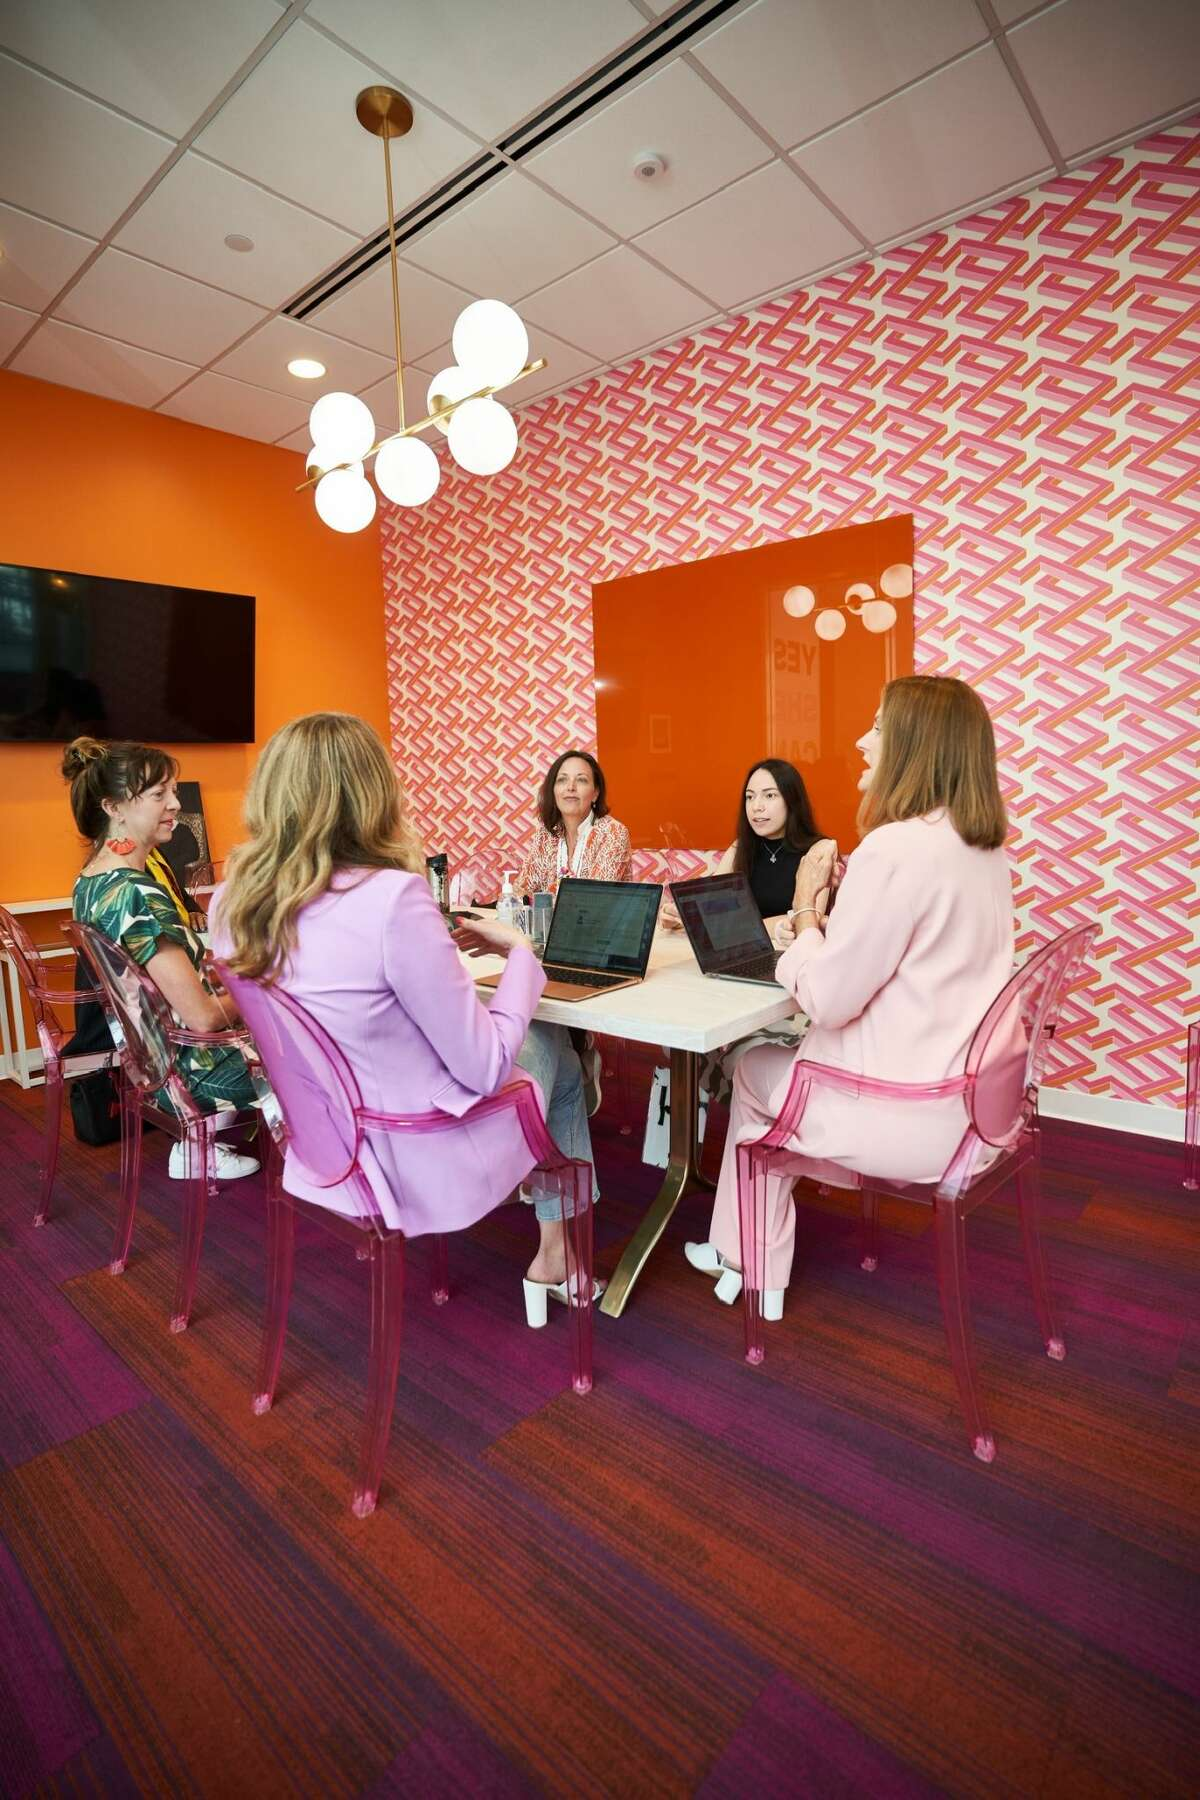 SheSpace, the female-focused coworking space at 2799 Katy Freeway in the Heights area, is expanding by 1,500 square feet.